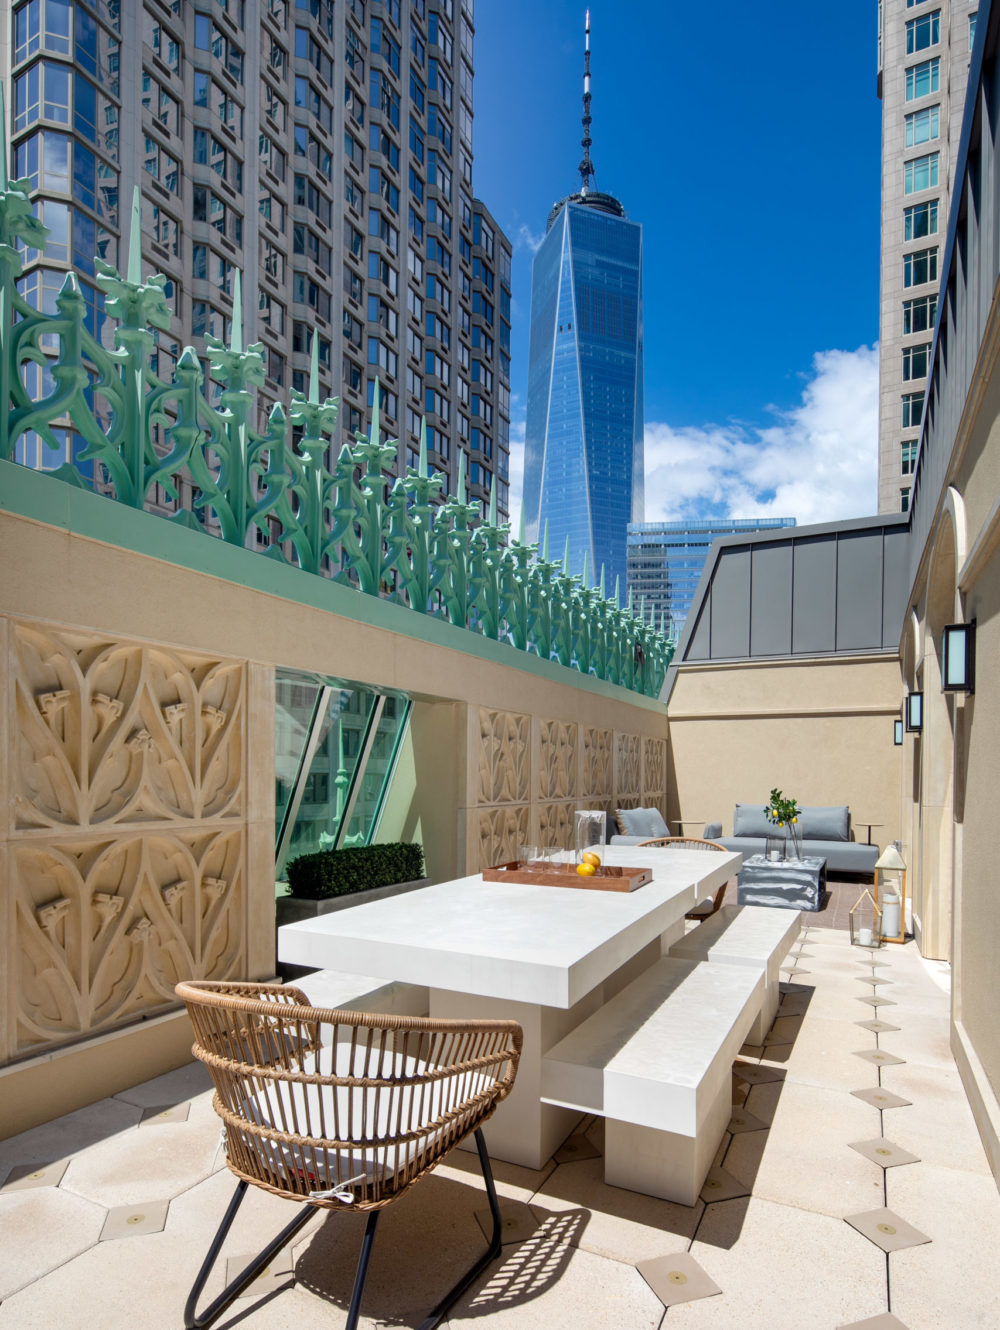 Balcony terrace at the Woolworth Tower Residences in New York. Sunlit patio with long white table, tan walls & skyline views.